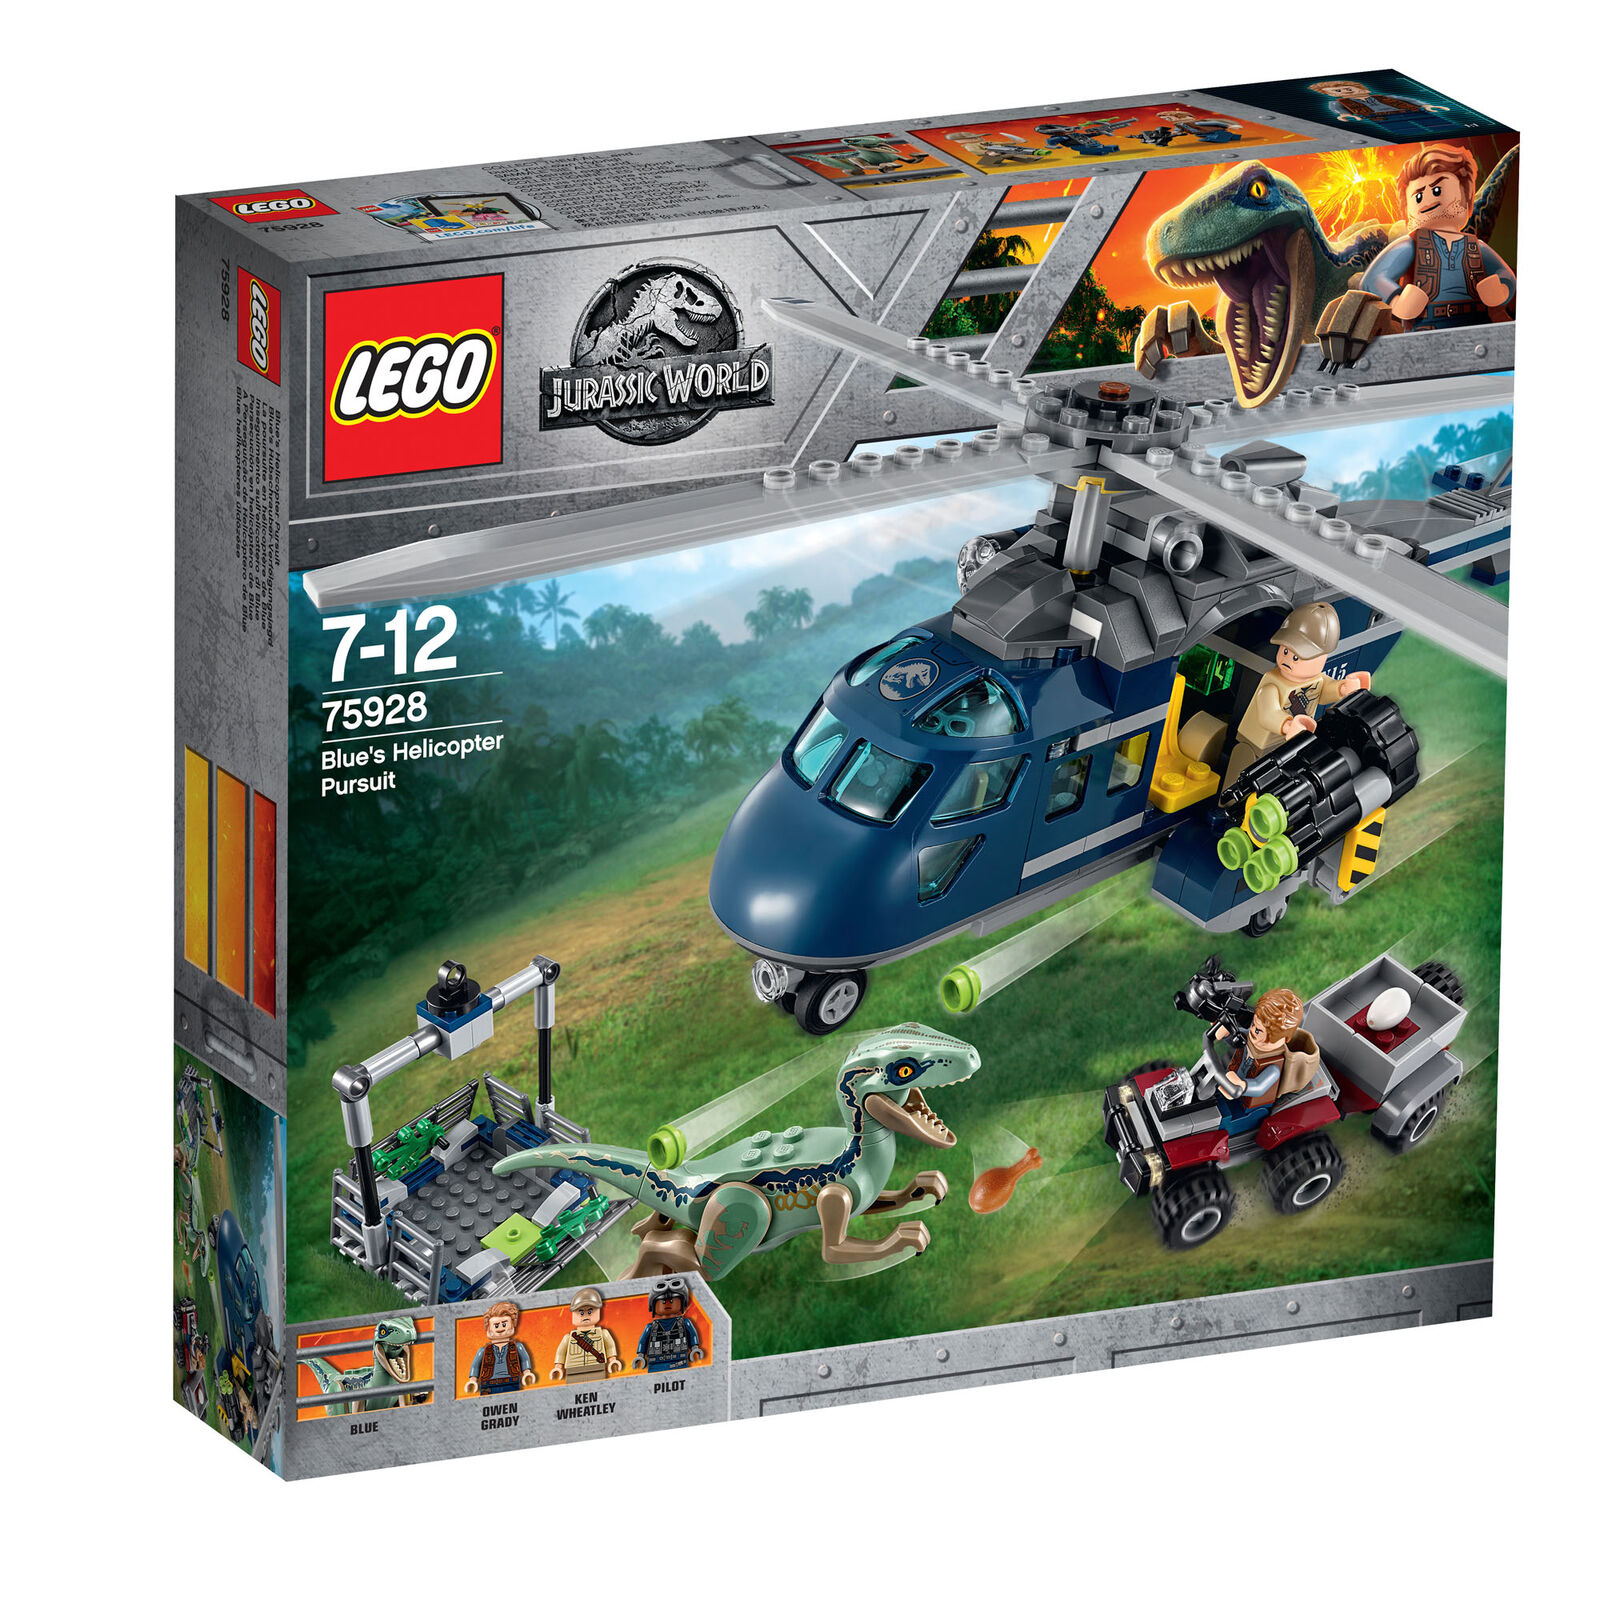 75928 LEGO Jurassic World Blau's Helicopter Pursuit 397 Pieces Age 7+ New 2018